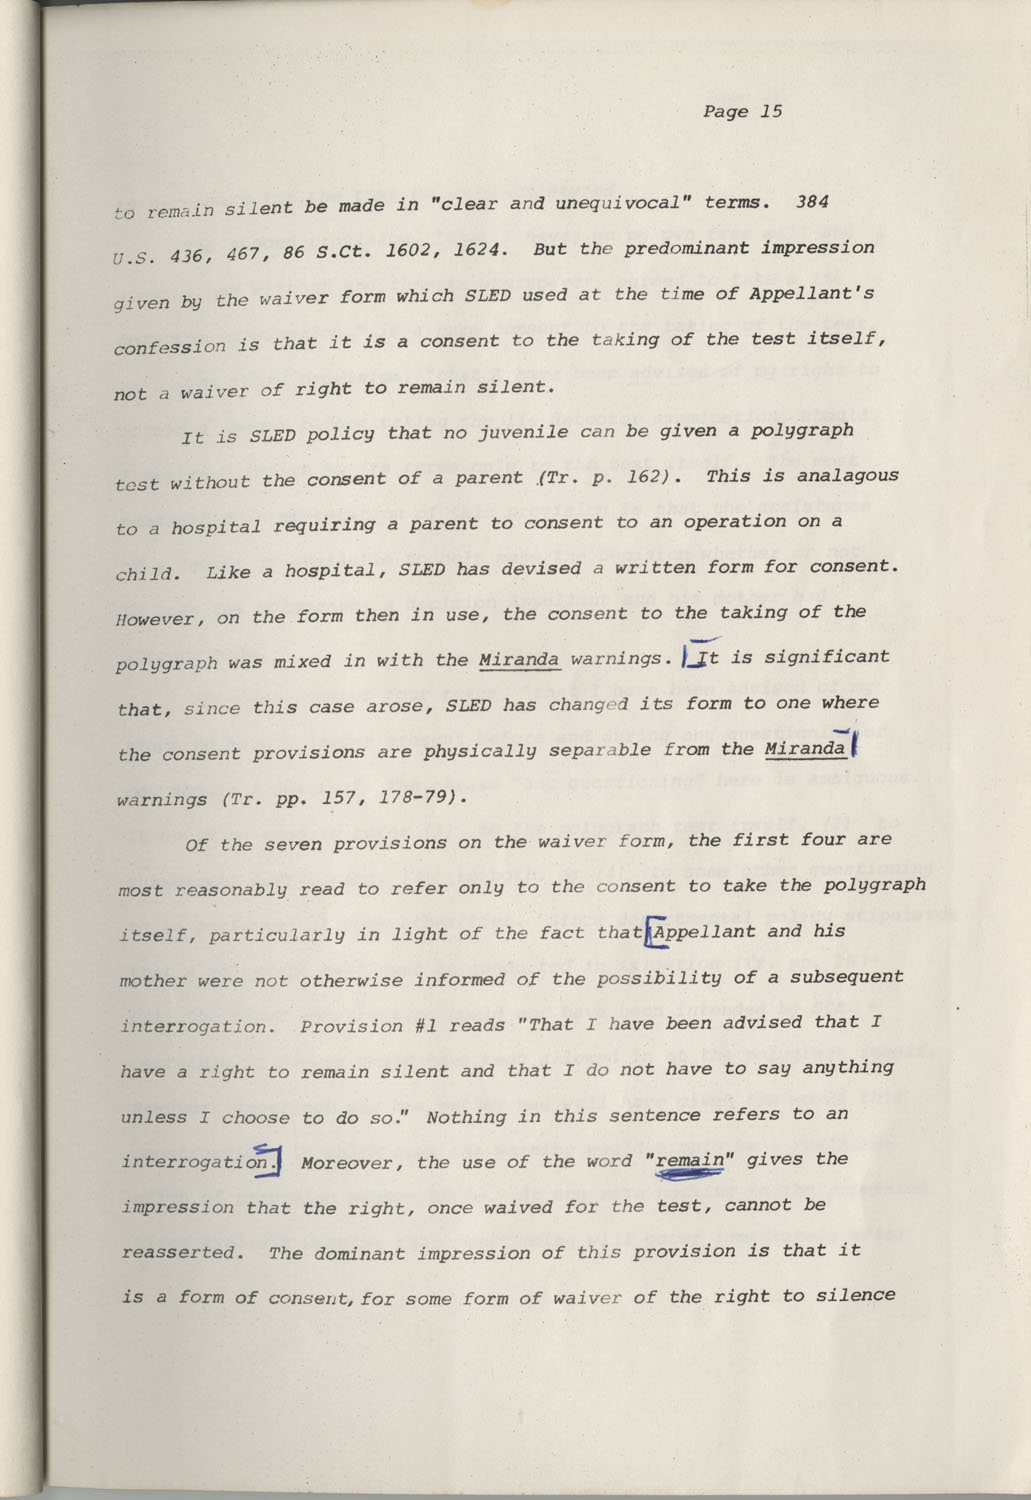 State of South Carolina vs. Robert Lee Smith, Brief of Appellant, Page 15